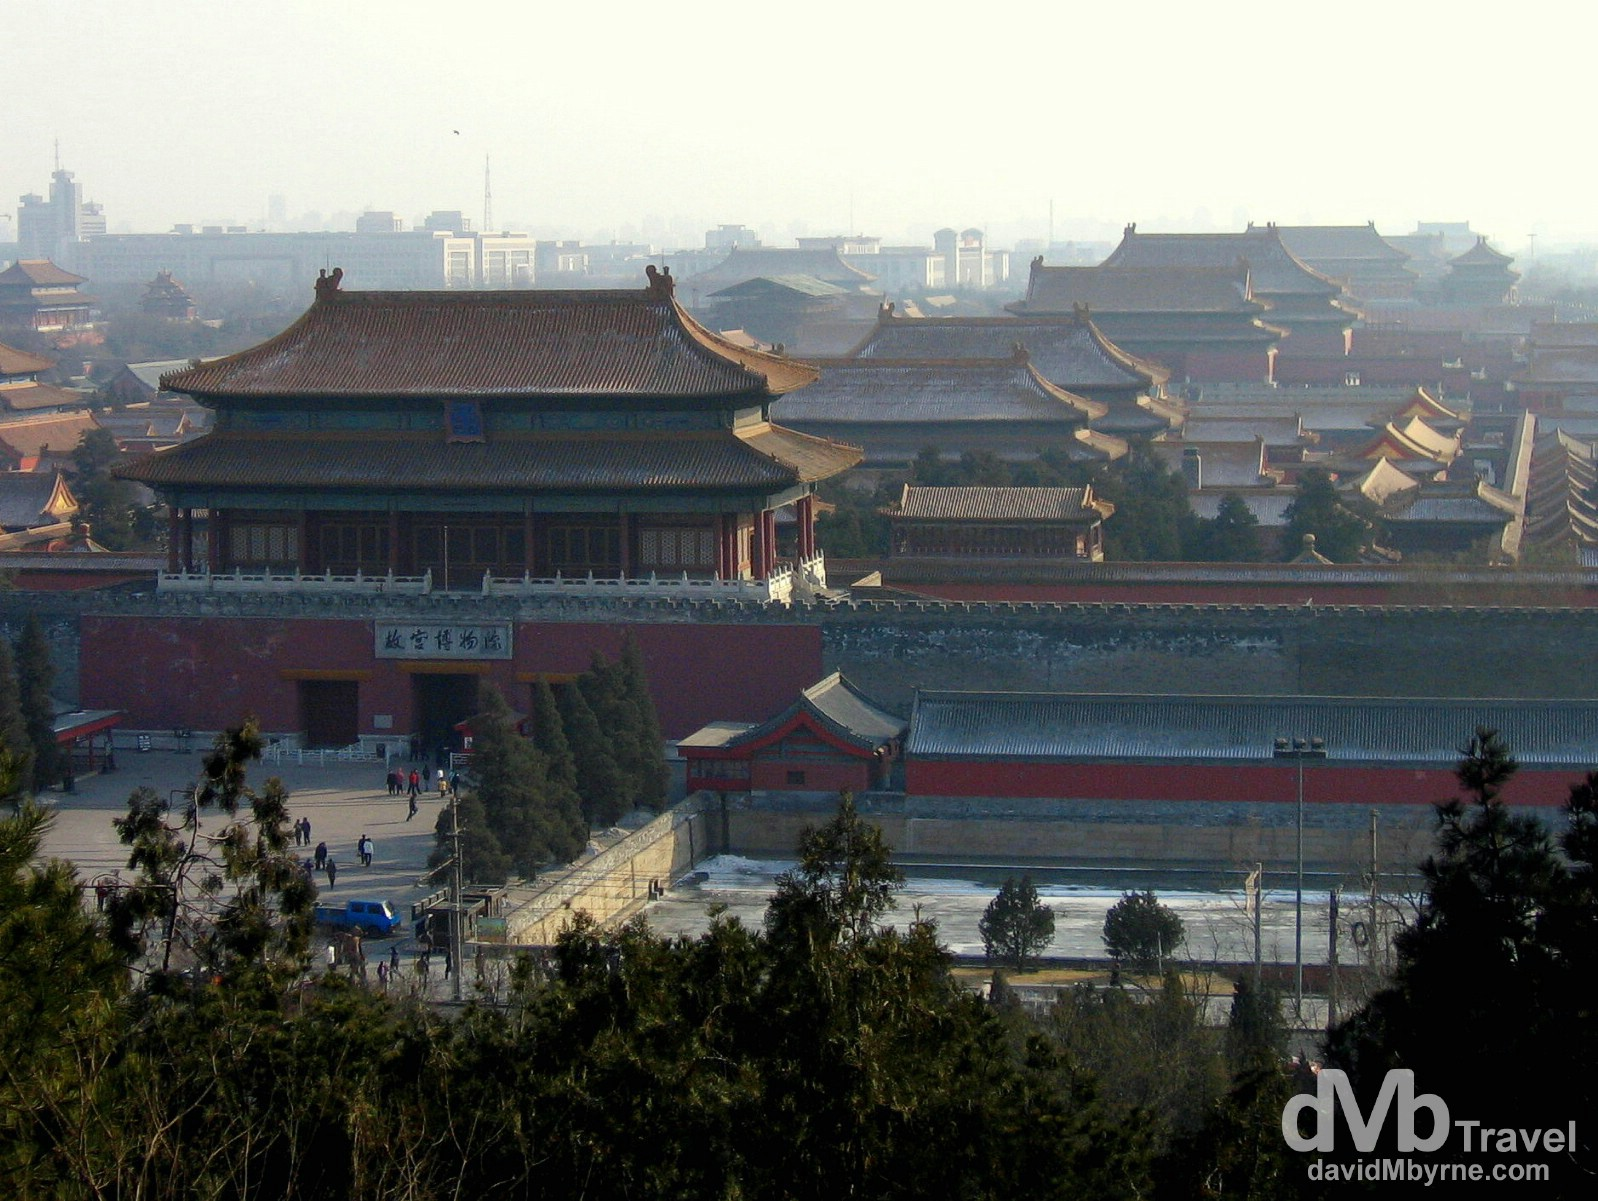 The Forbidden City, now renamed the Palace Museum, as seen from Jingshan Park in Beijing, China. February 11, 2006.